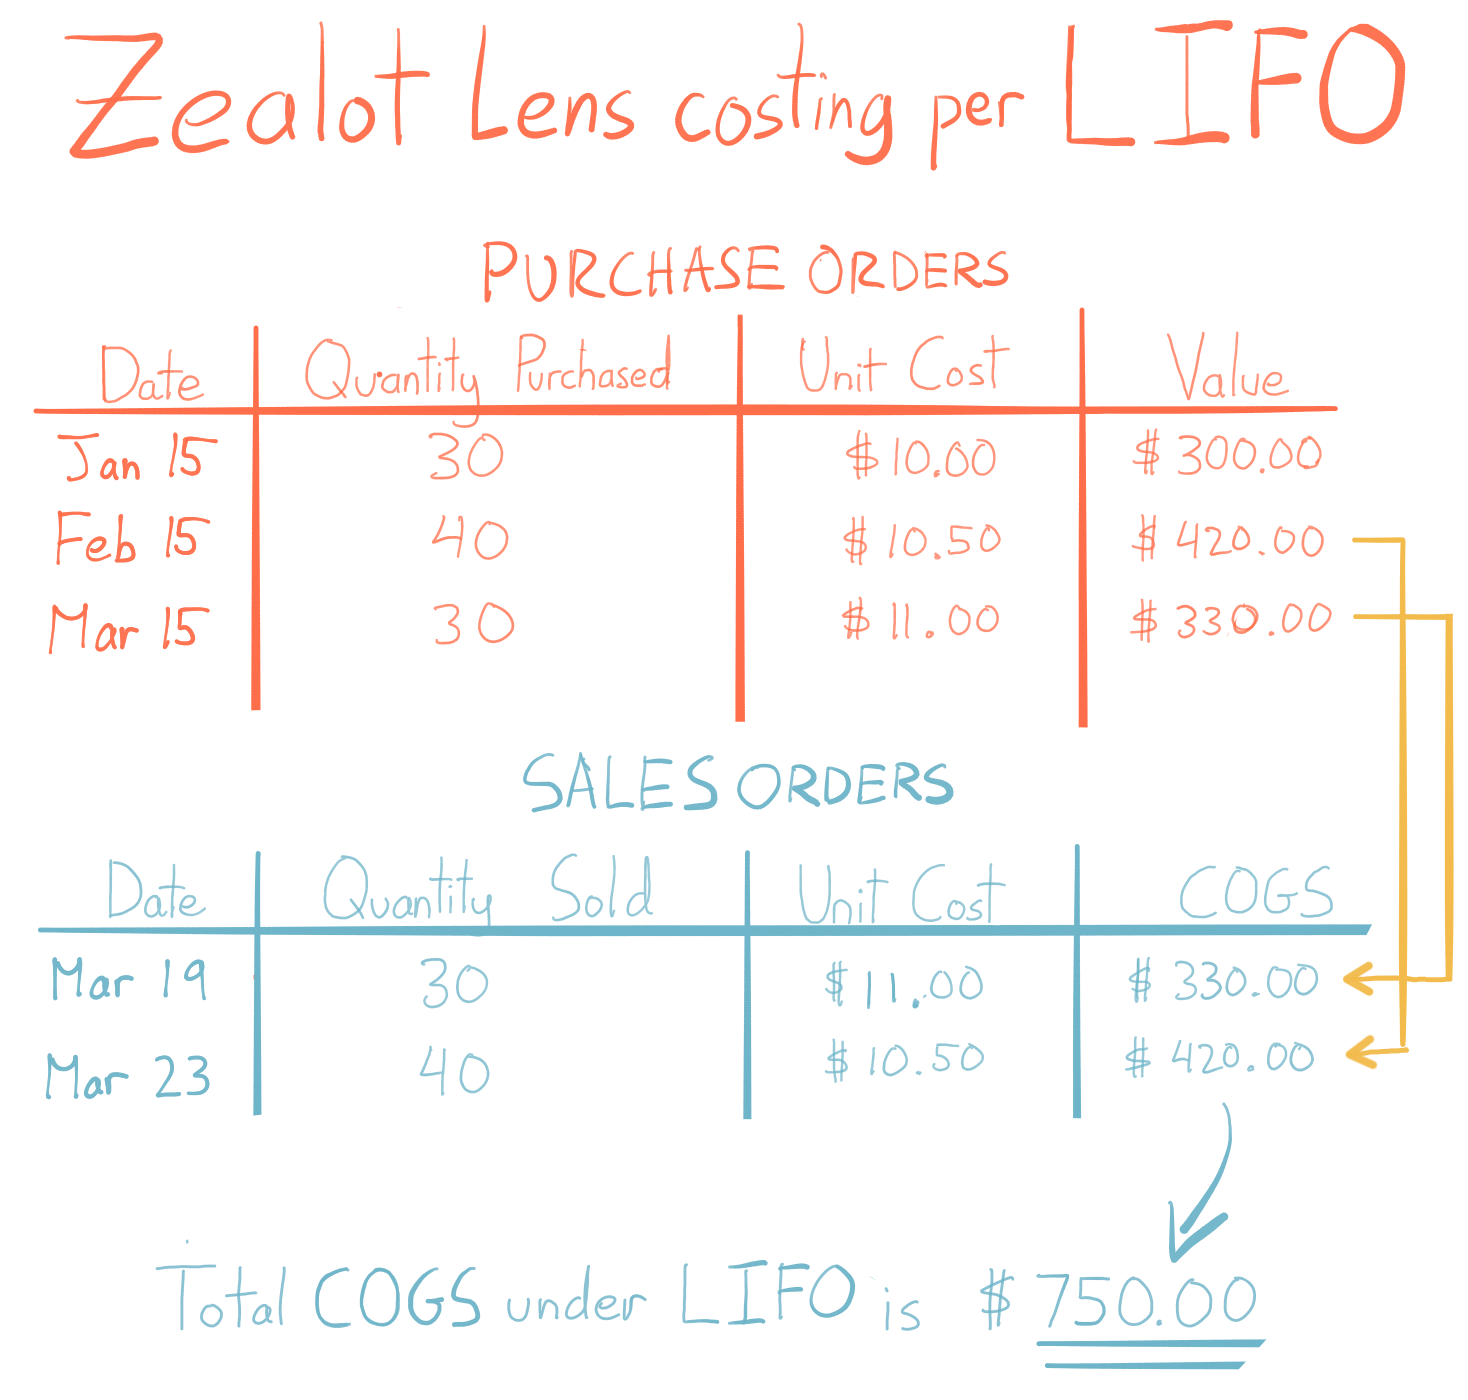 This table highlights how the FIFO method affects cost. There are a series of purchase orders on top and a series of sales orders on the bottom. Arrows connect the most recent purchase order to the first sales order, and the second purchase order to the second sales order. The COGS for both sales is $750, which is higher than the $720 in the FIFO table.